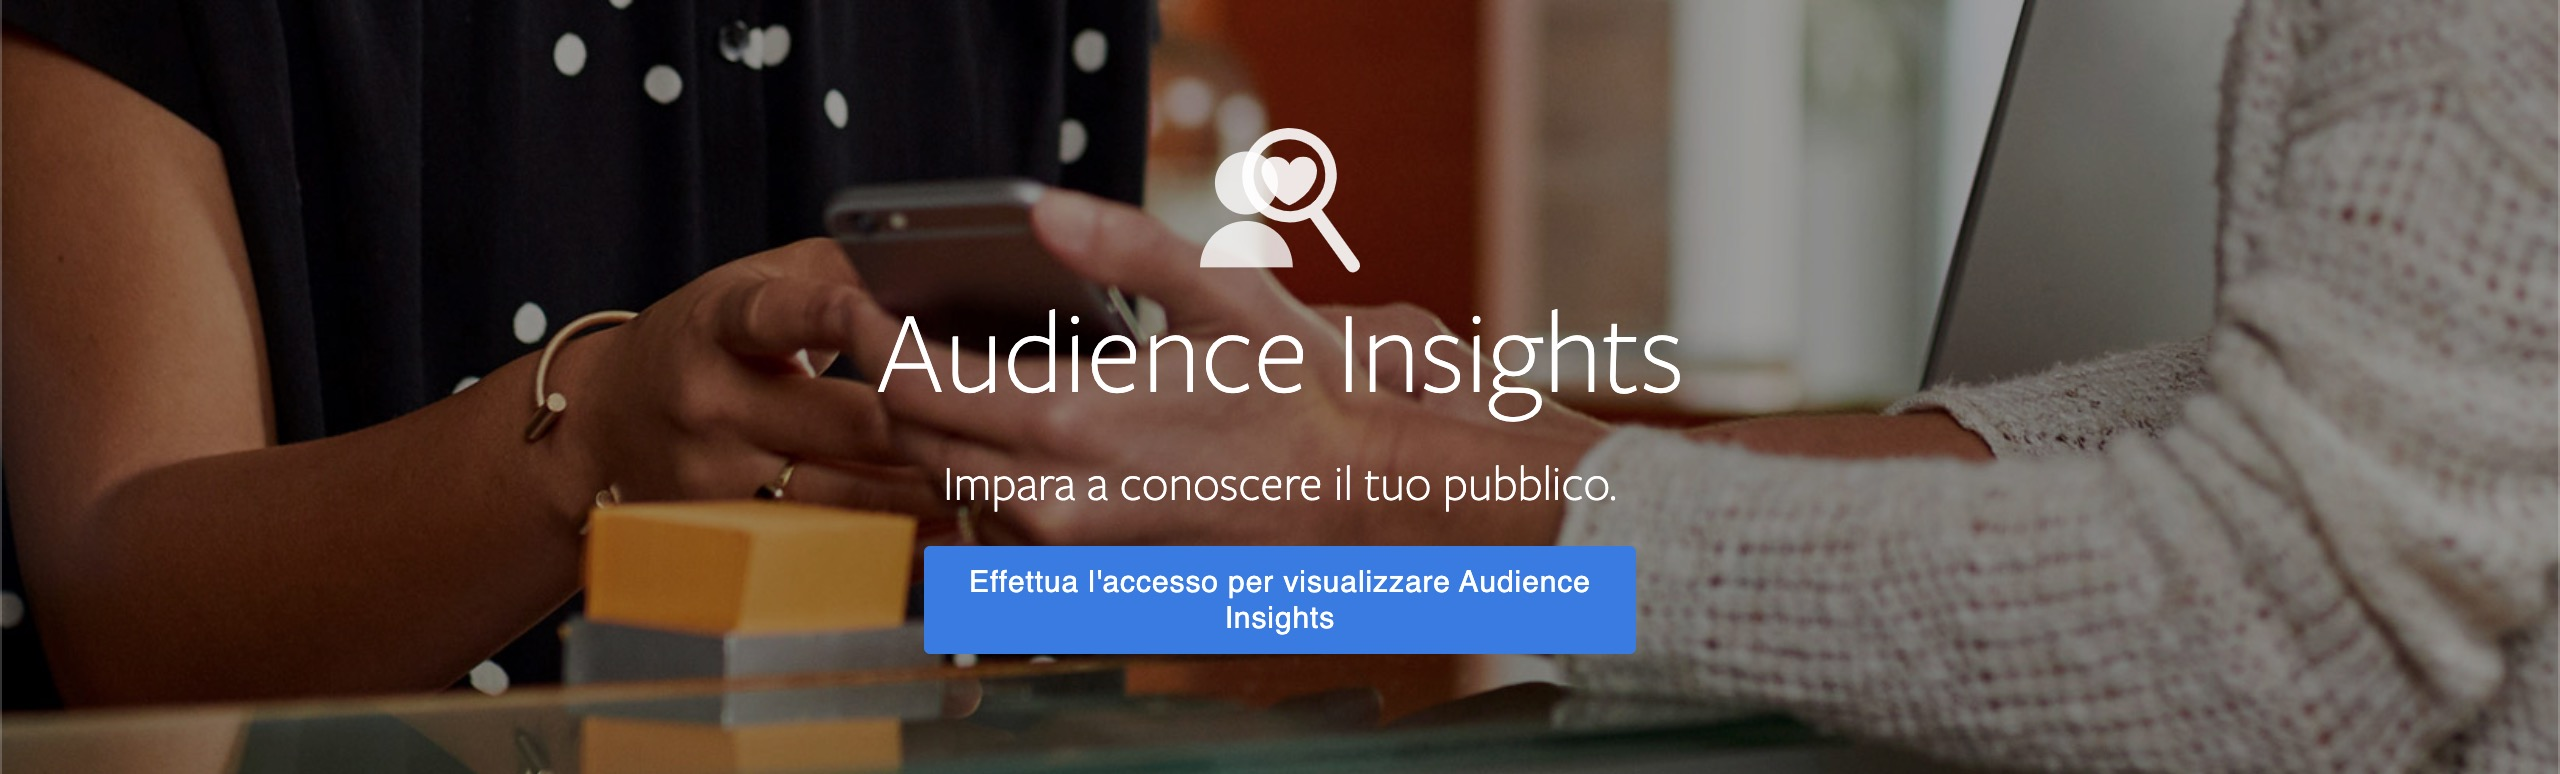 Brand-Facebook-audience-insights